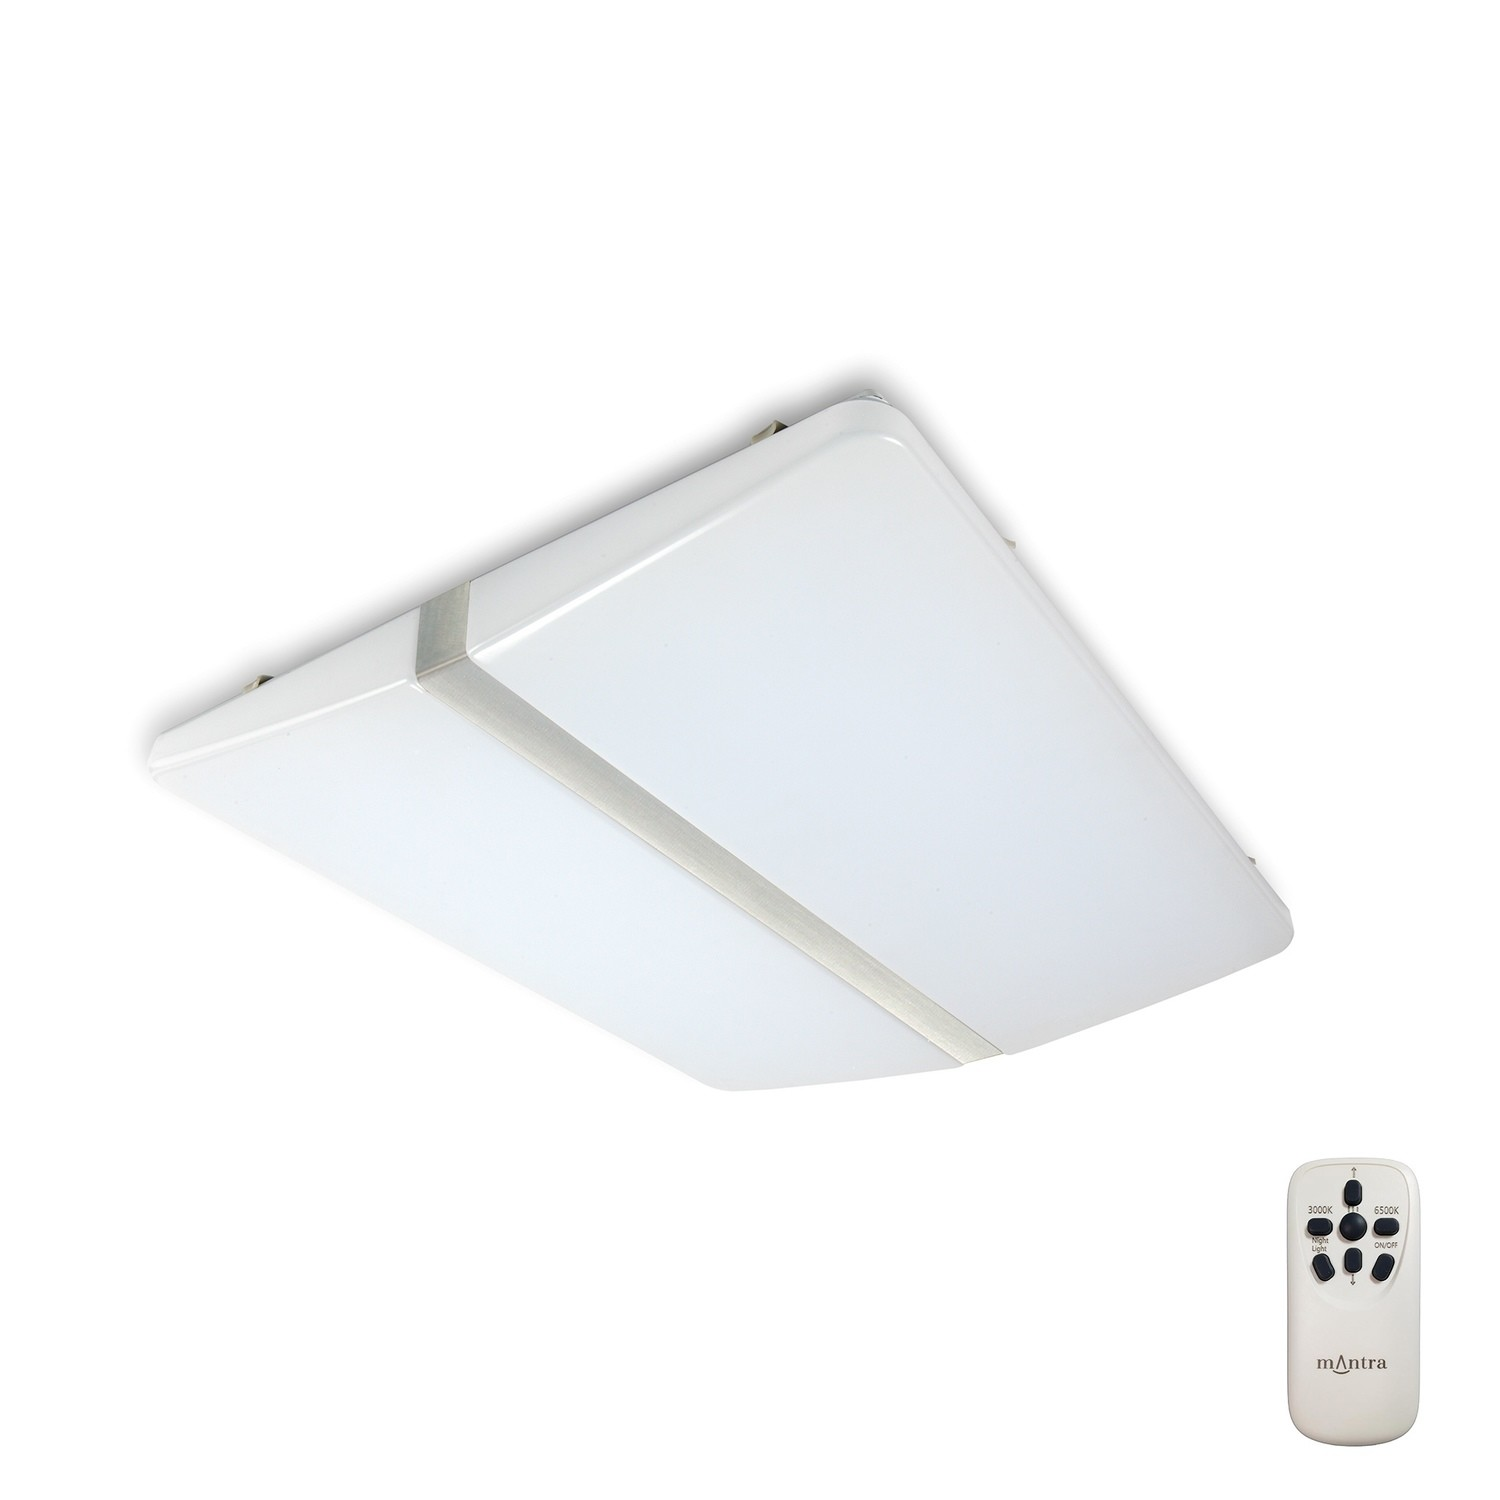 Line Ceiling 108W LED Square With Remote Control 3000-6500K, 6500lm, Polished Chrome/White Acrylic, 3yrs Warranty